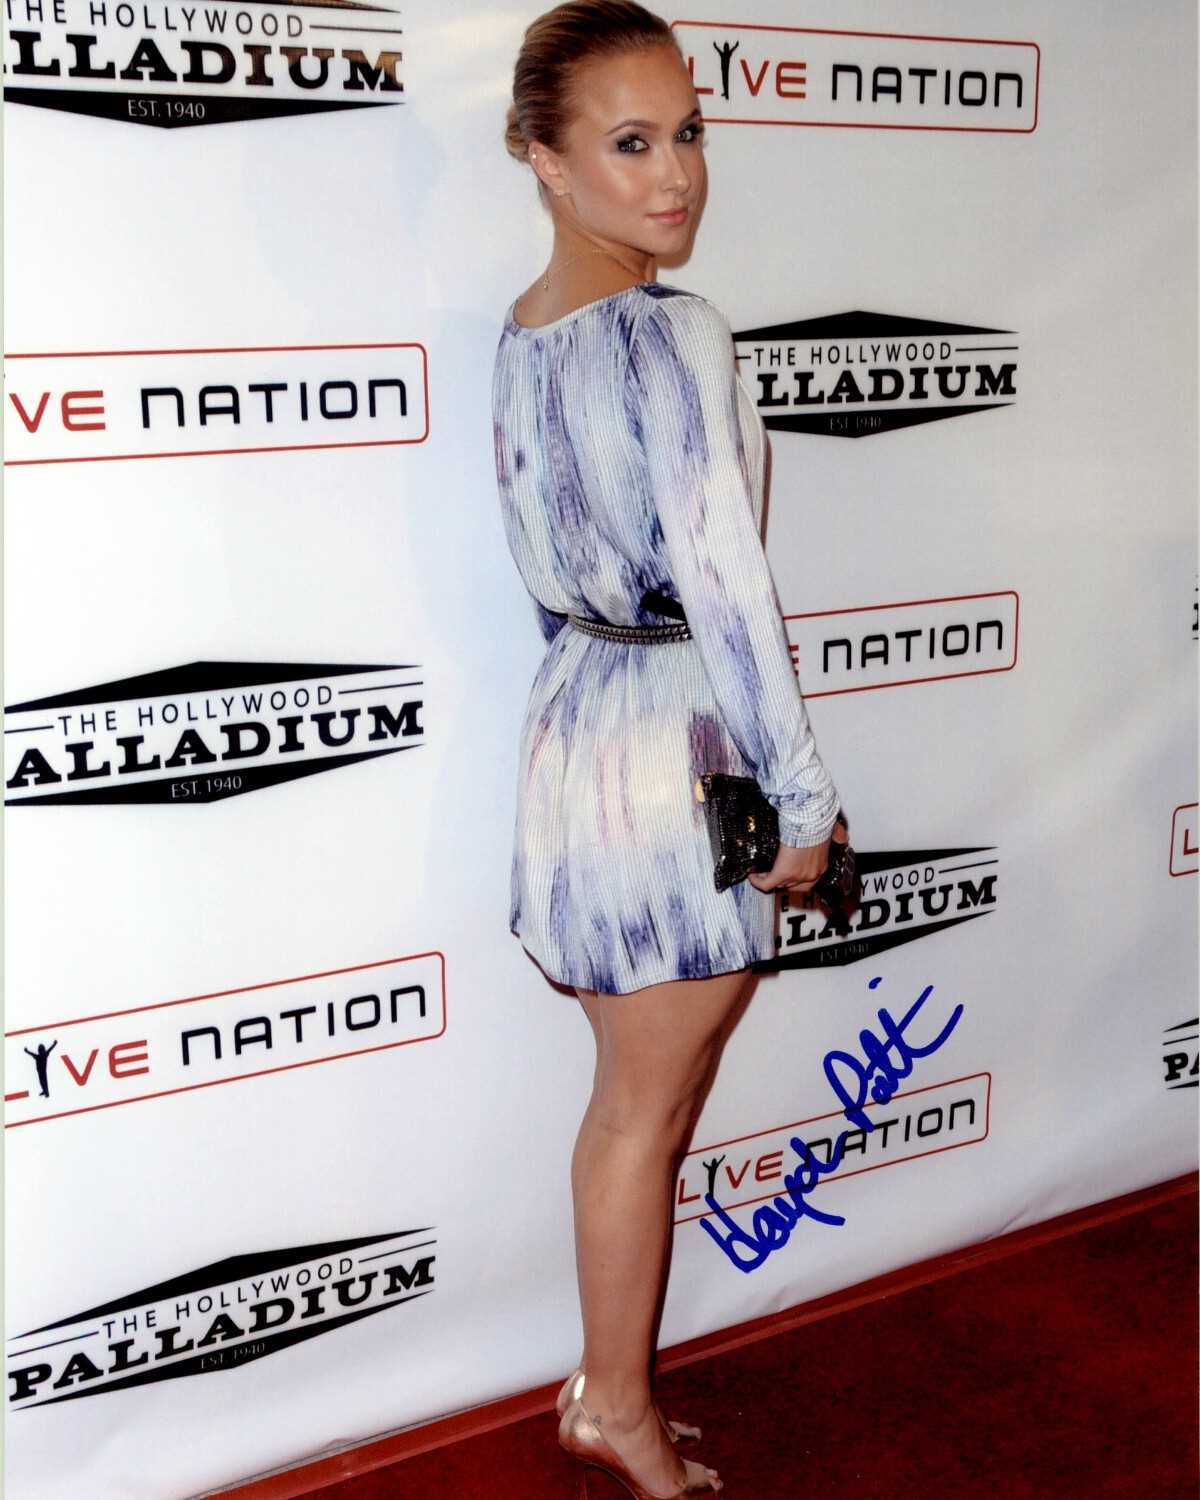 Primary image for Hayden Panettiere Signed Autographed Glossy 8x10 photo